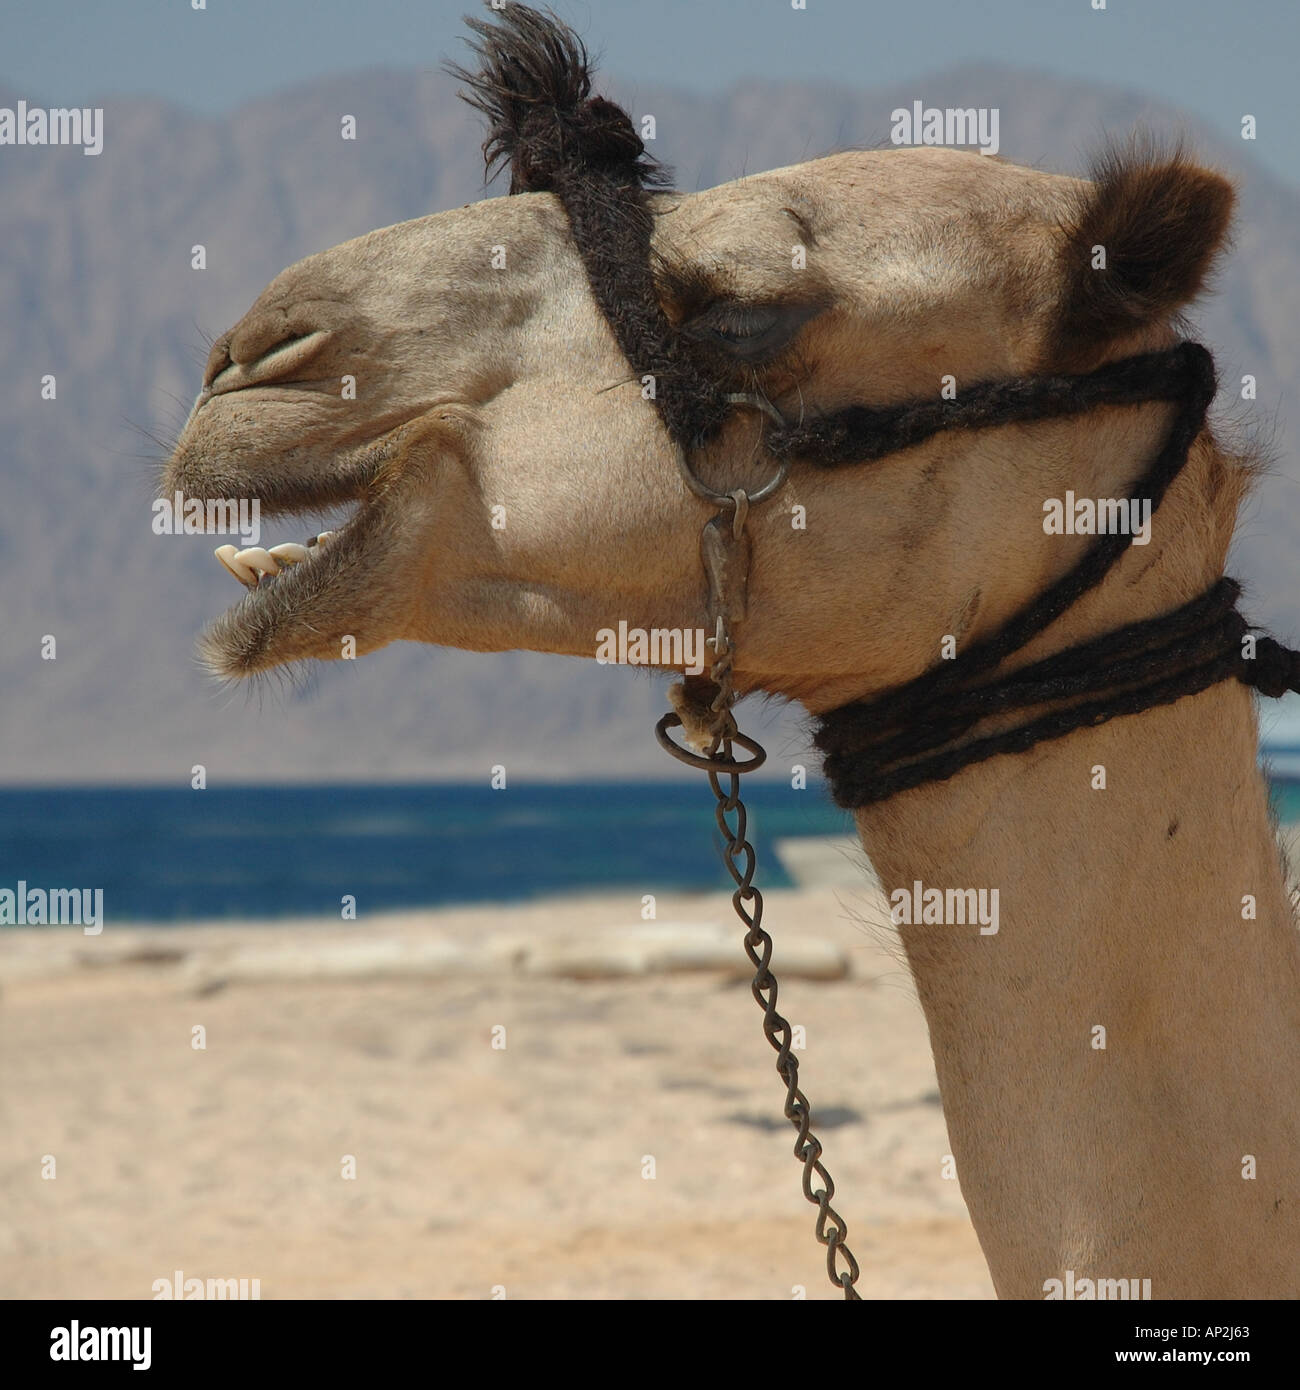 Portrait of a Bedouin s camel tethered on the beach at Nuweiba in Egypt Stock Photo